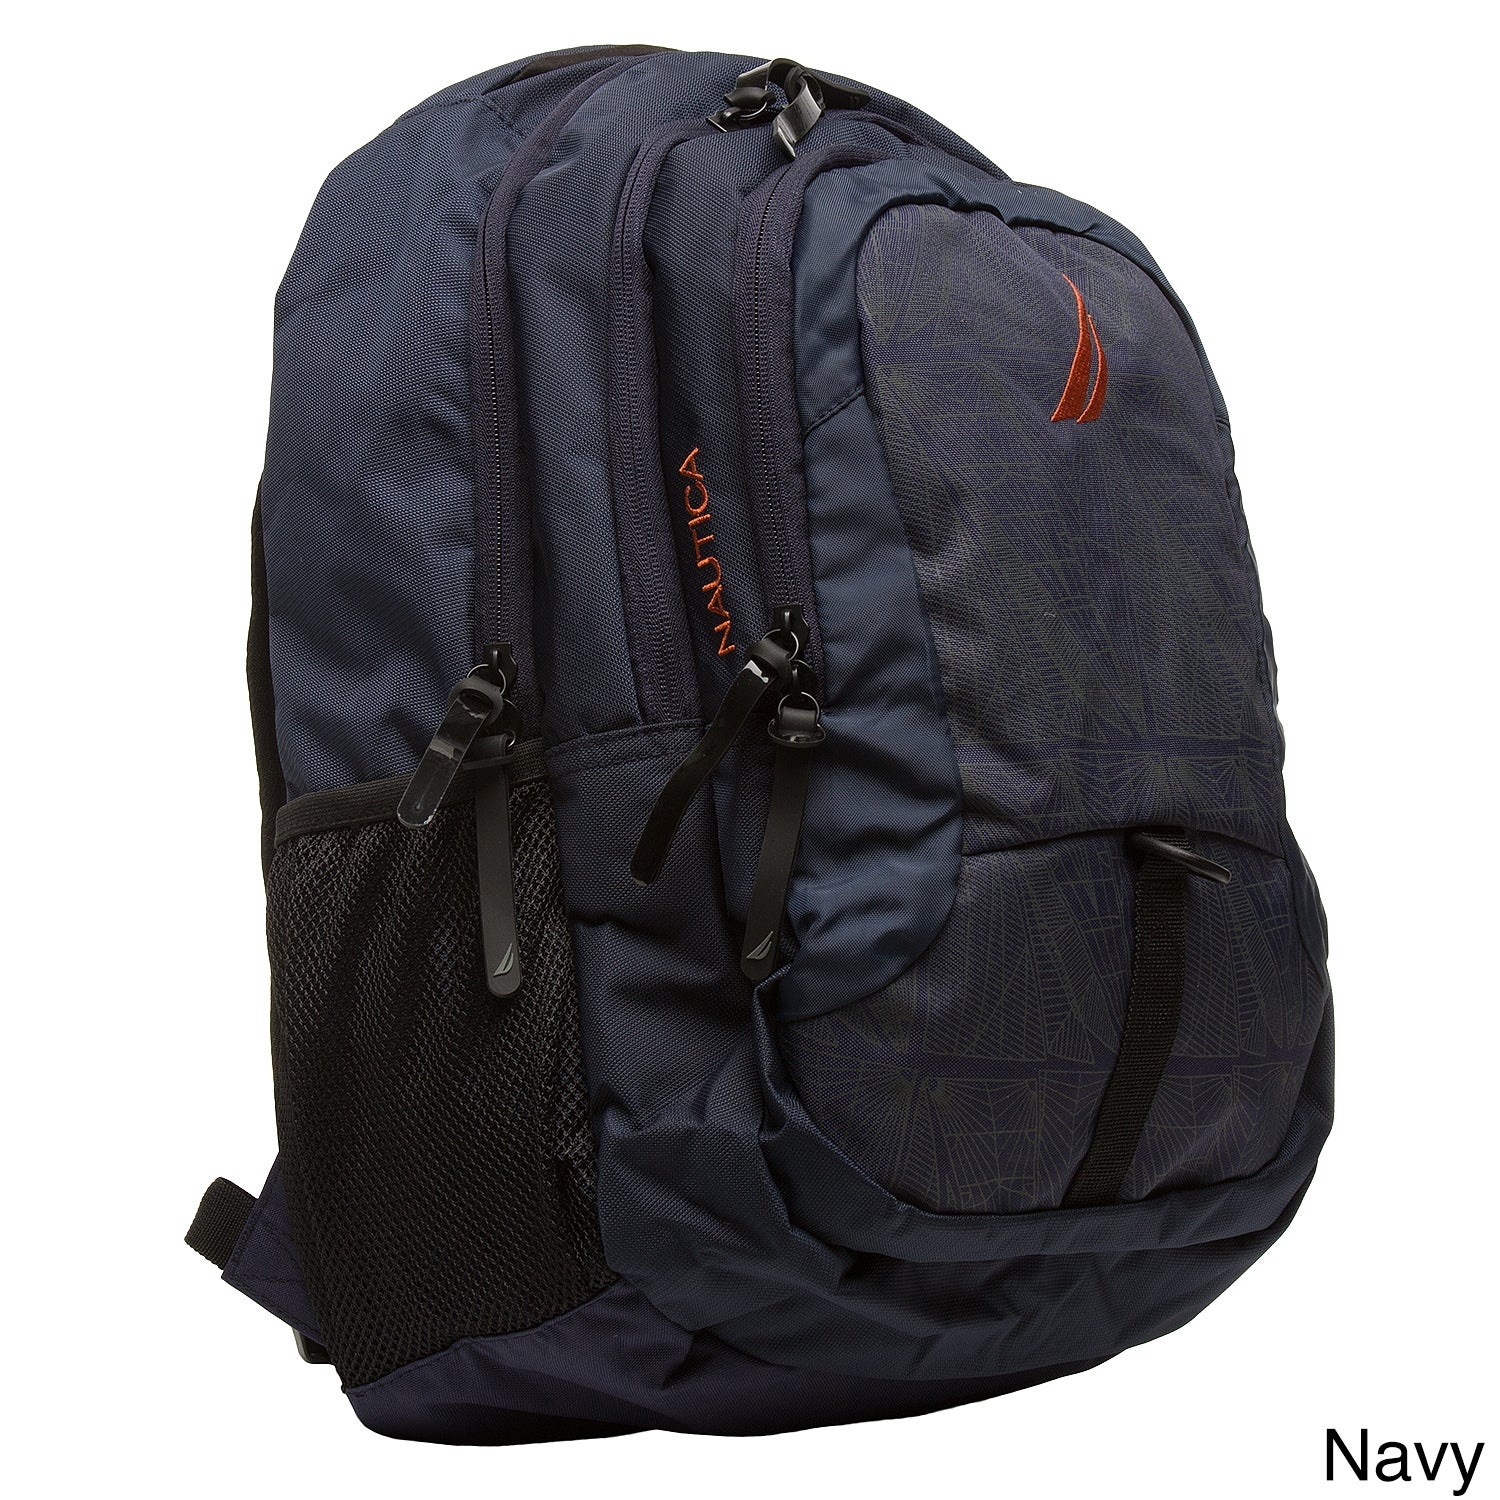 6b421212d Shop Nautica 15-inch Laptop Backpack - Free Shipping On Orders Over $45 -  Overstock - 8076133